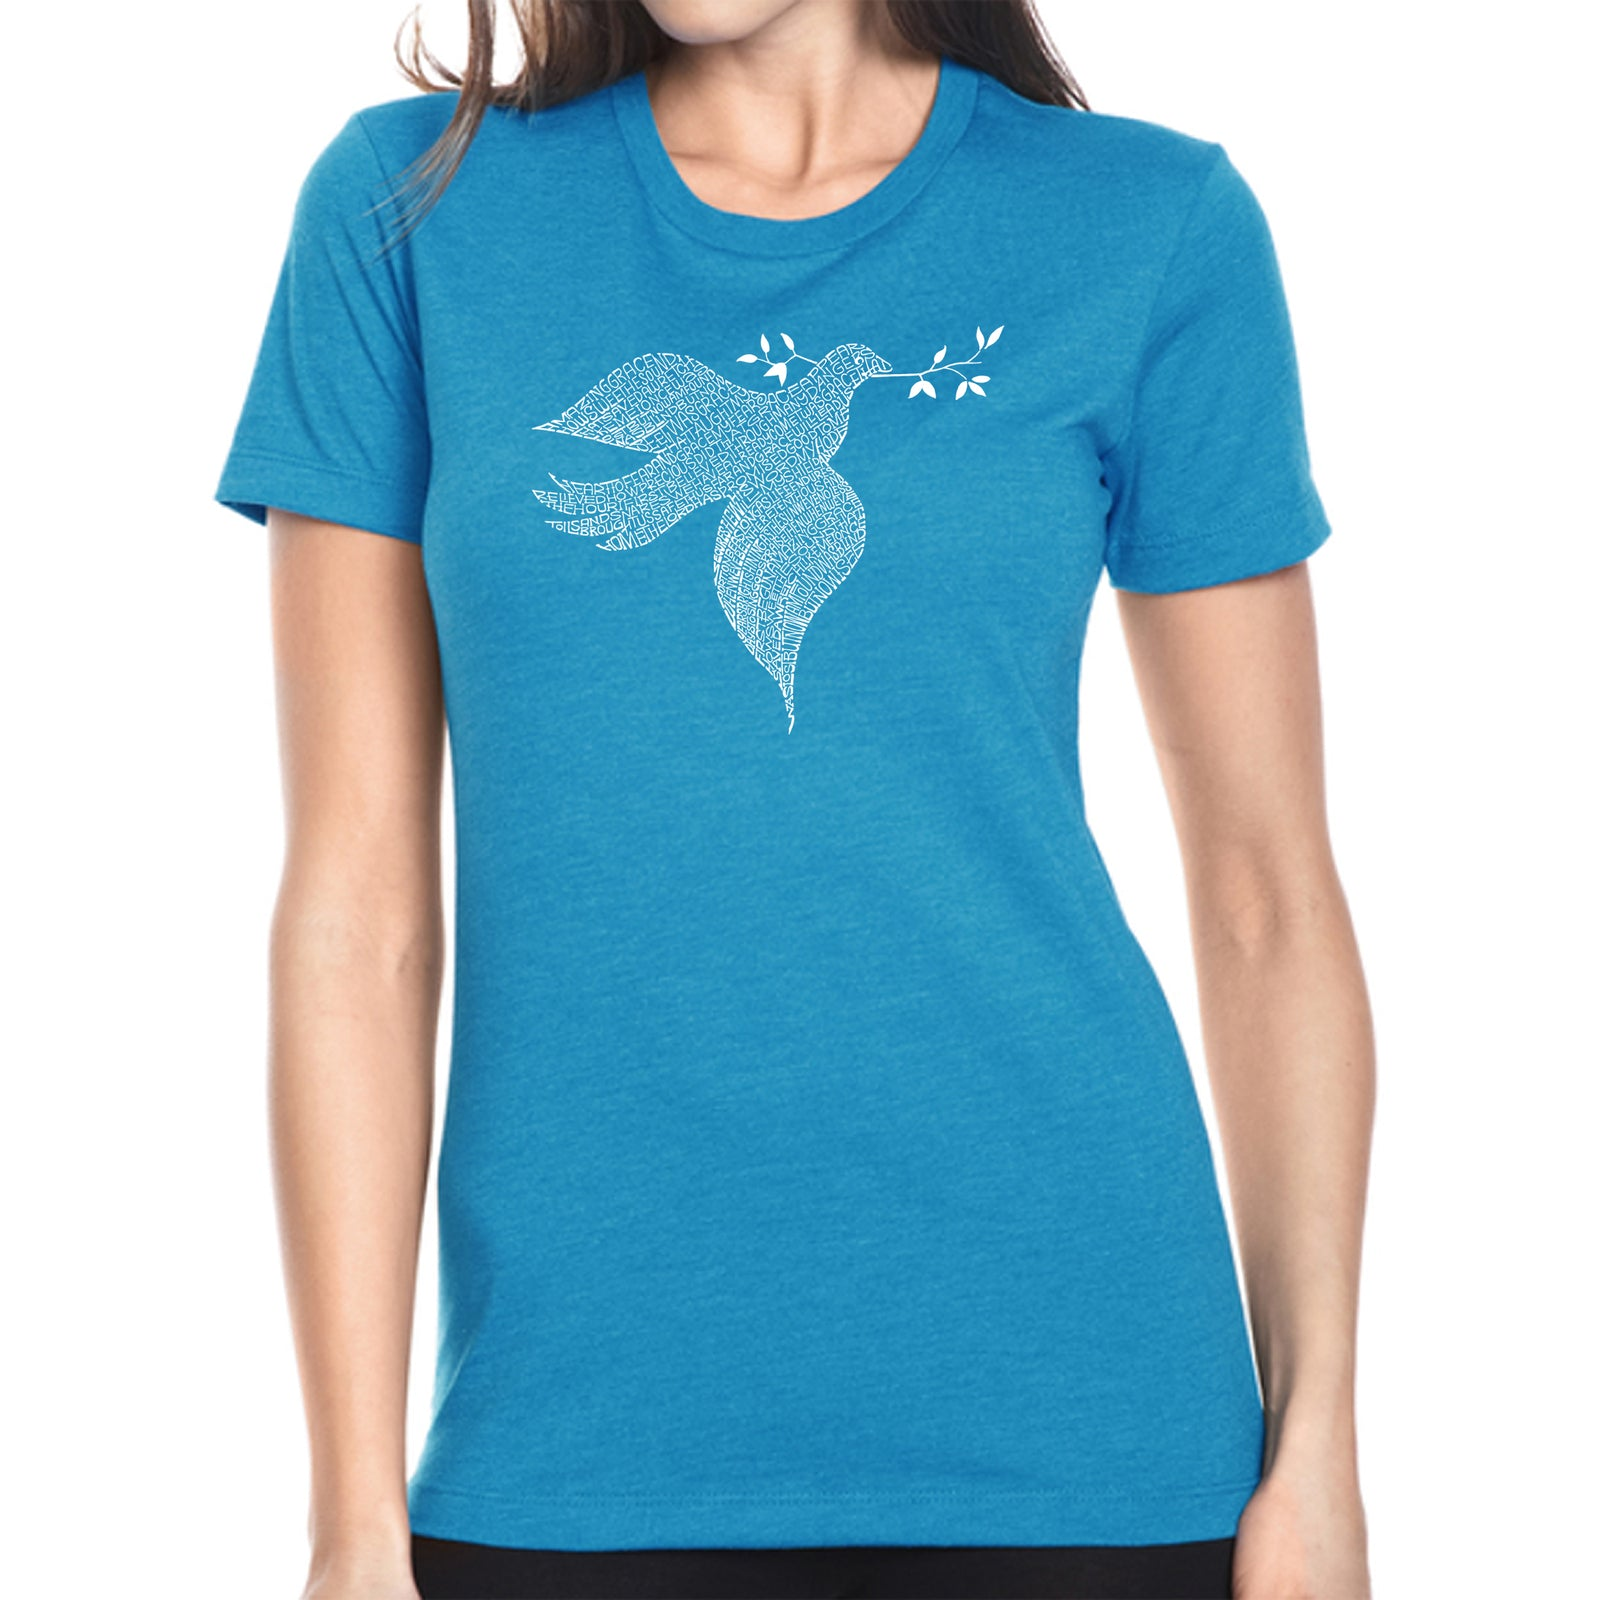 Women's Premium Blend Word Art T-shirt - Dove